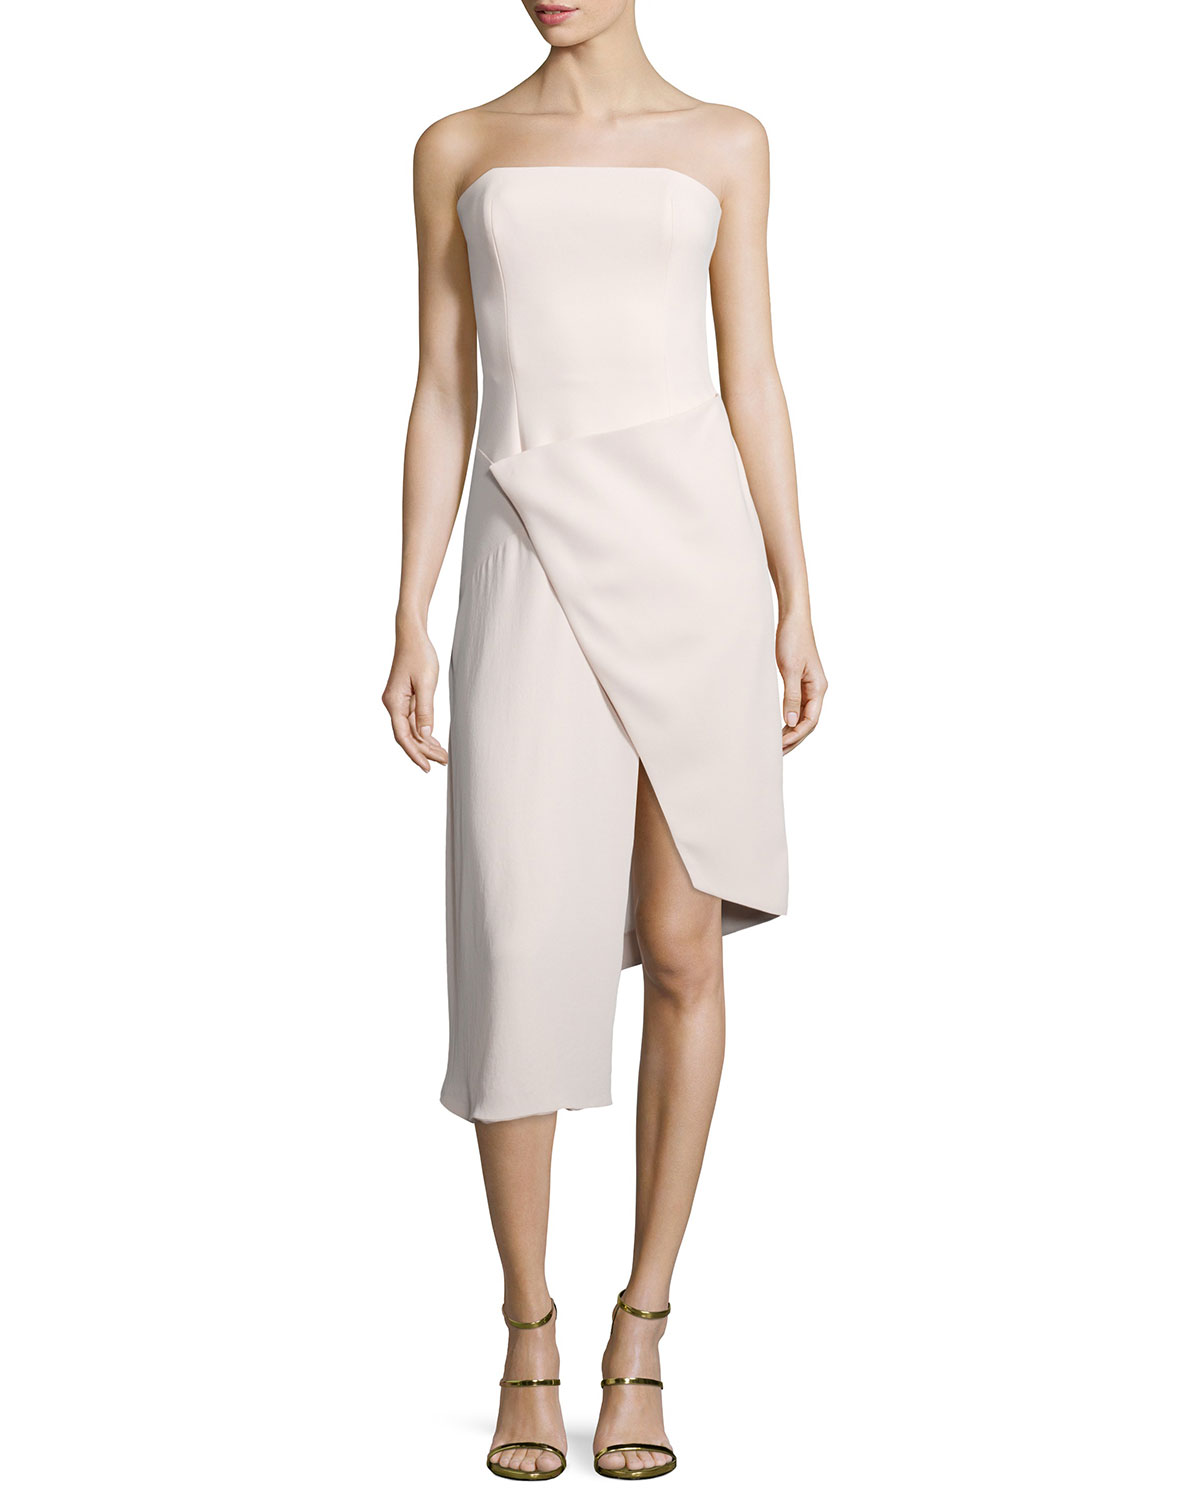 Strapless Front-Wrap Dress, Size: 0, Blush - Nicholas